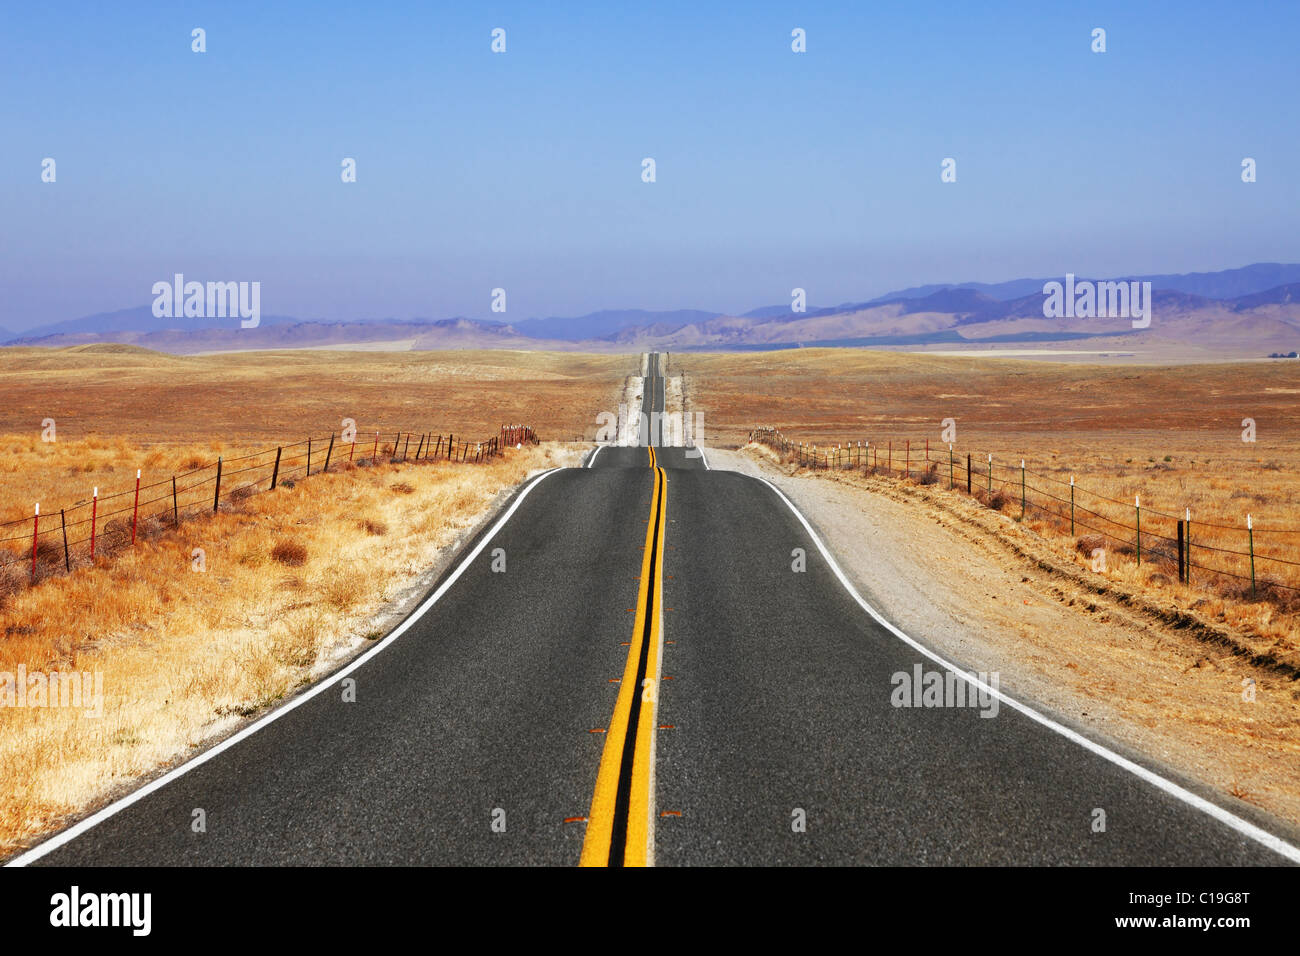 Abrupt bends of road on Californian steppes - Stock Image